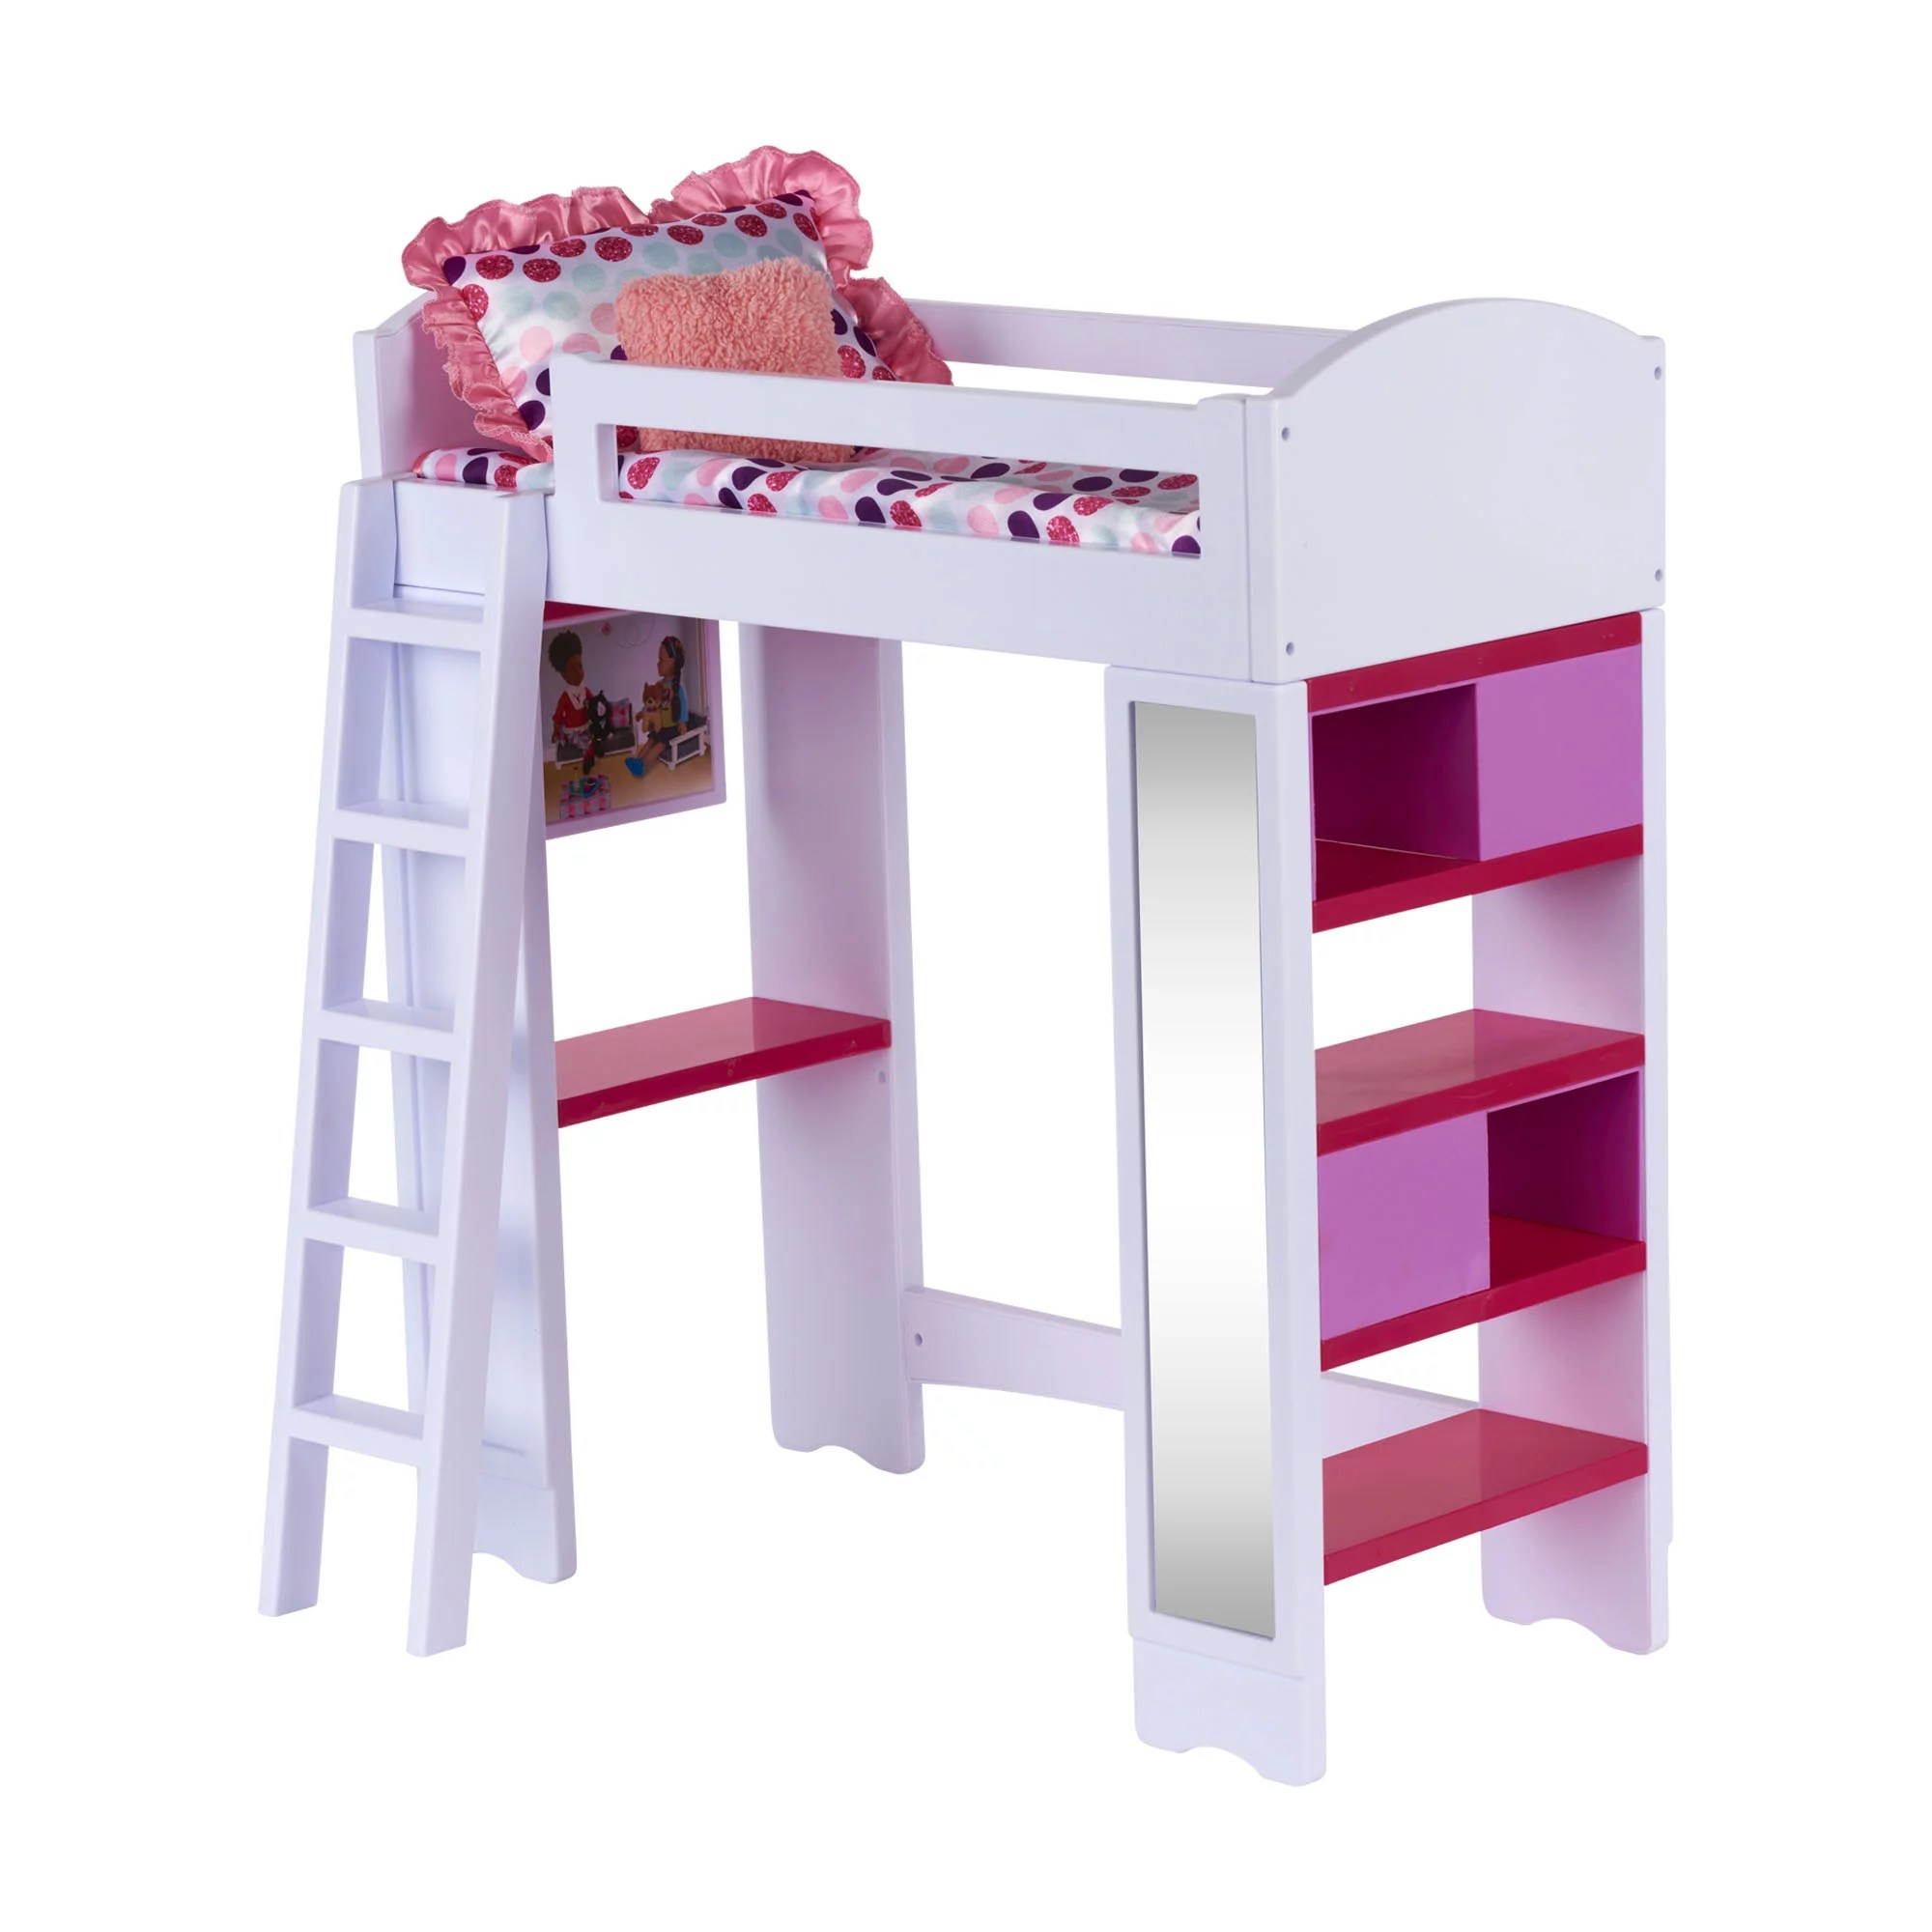 my life as loft bed play set for 18 dolls 6 pieces